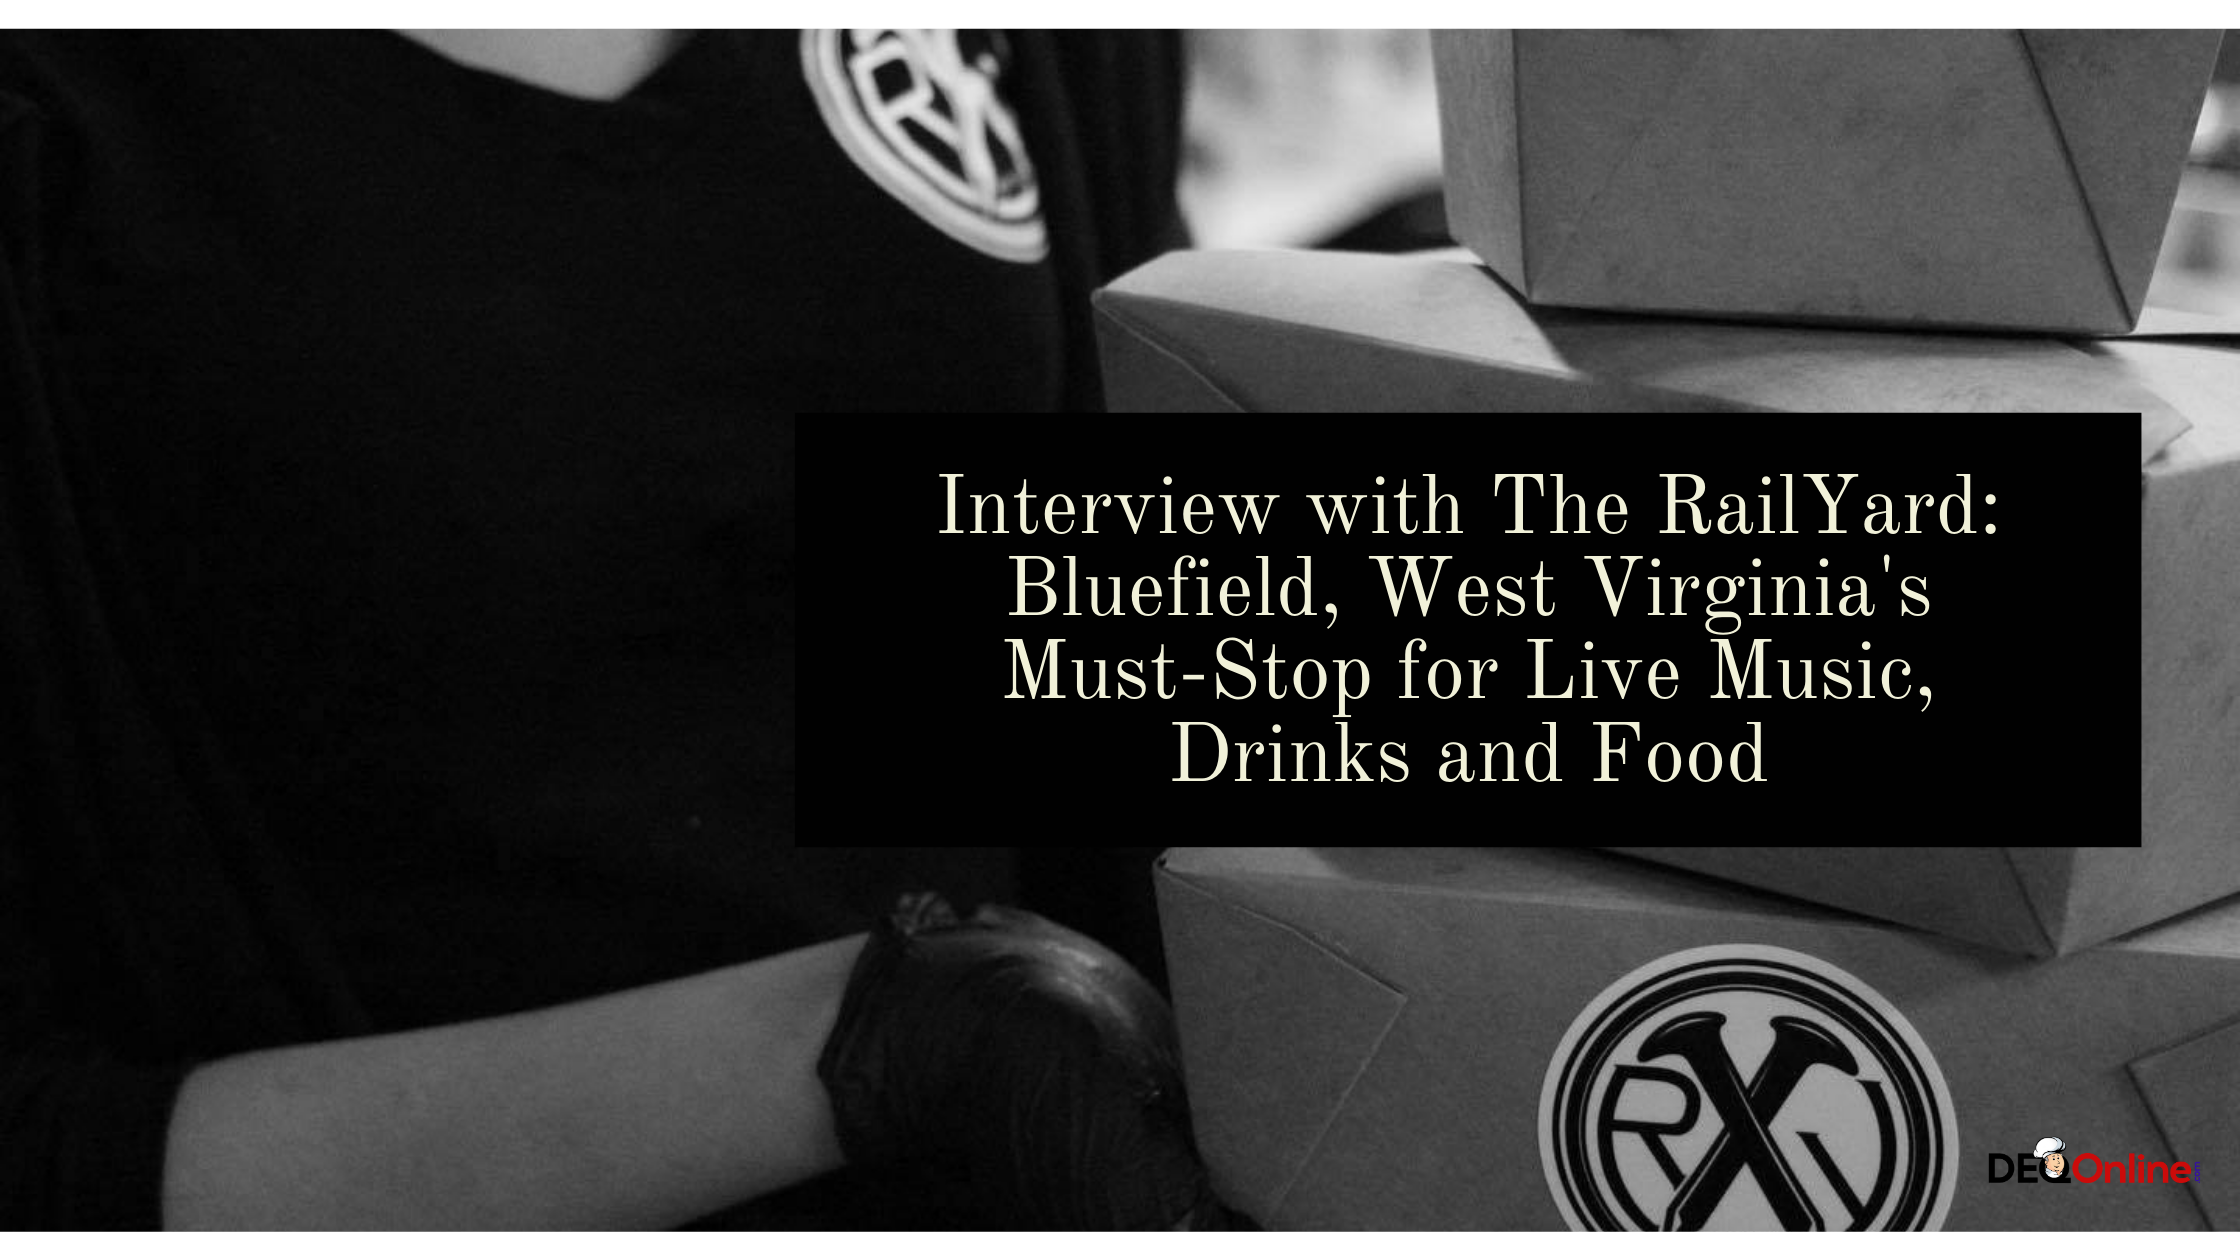 Interview with The RailYard: Bluefield, West Virginia's Must-Stop for Live Music, Drinks and Food